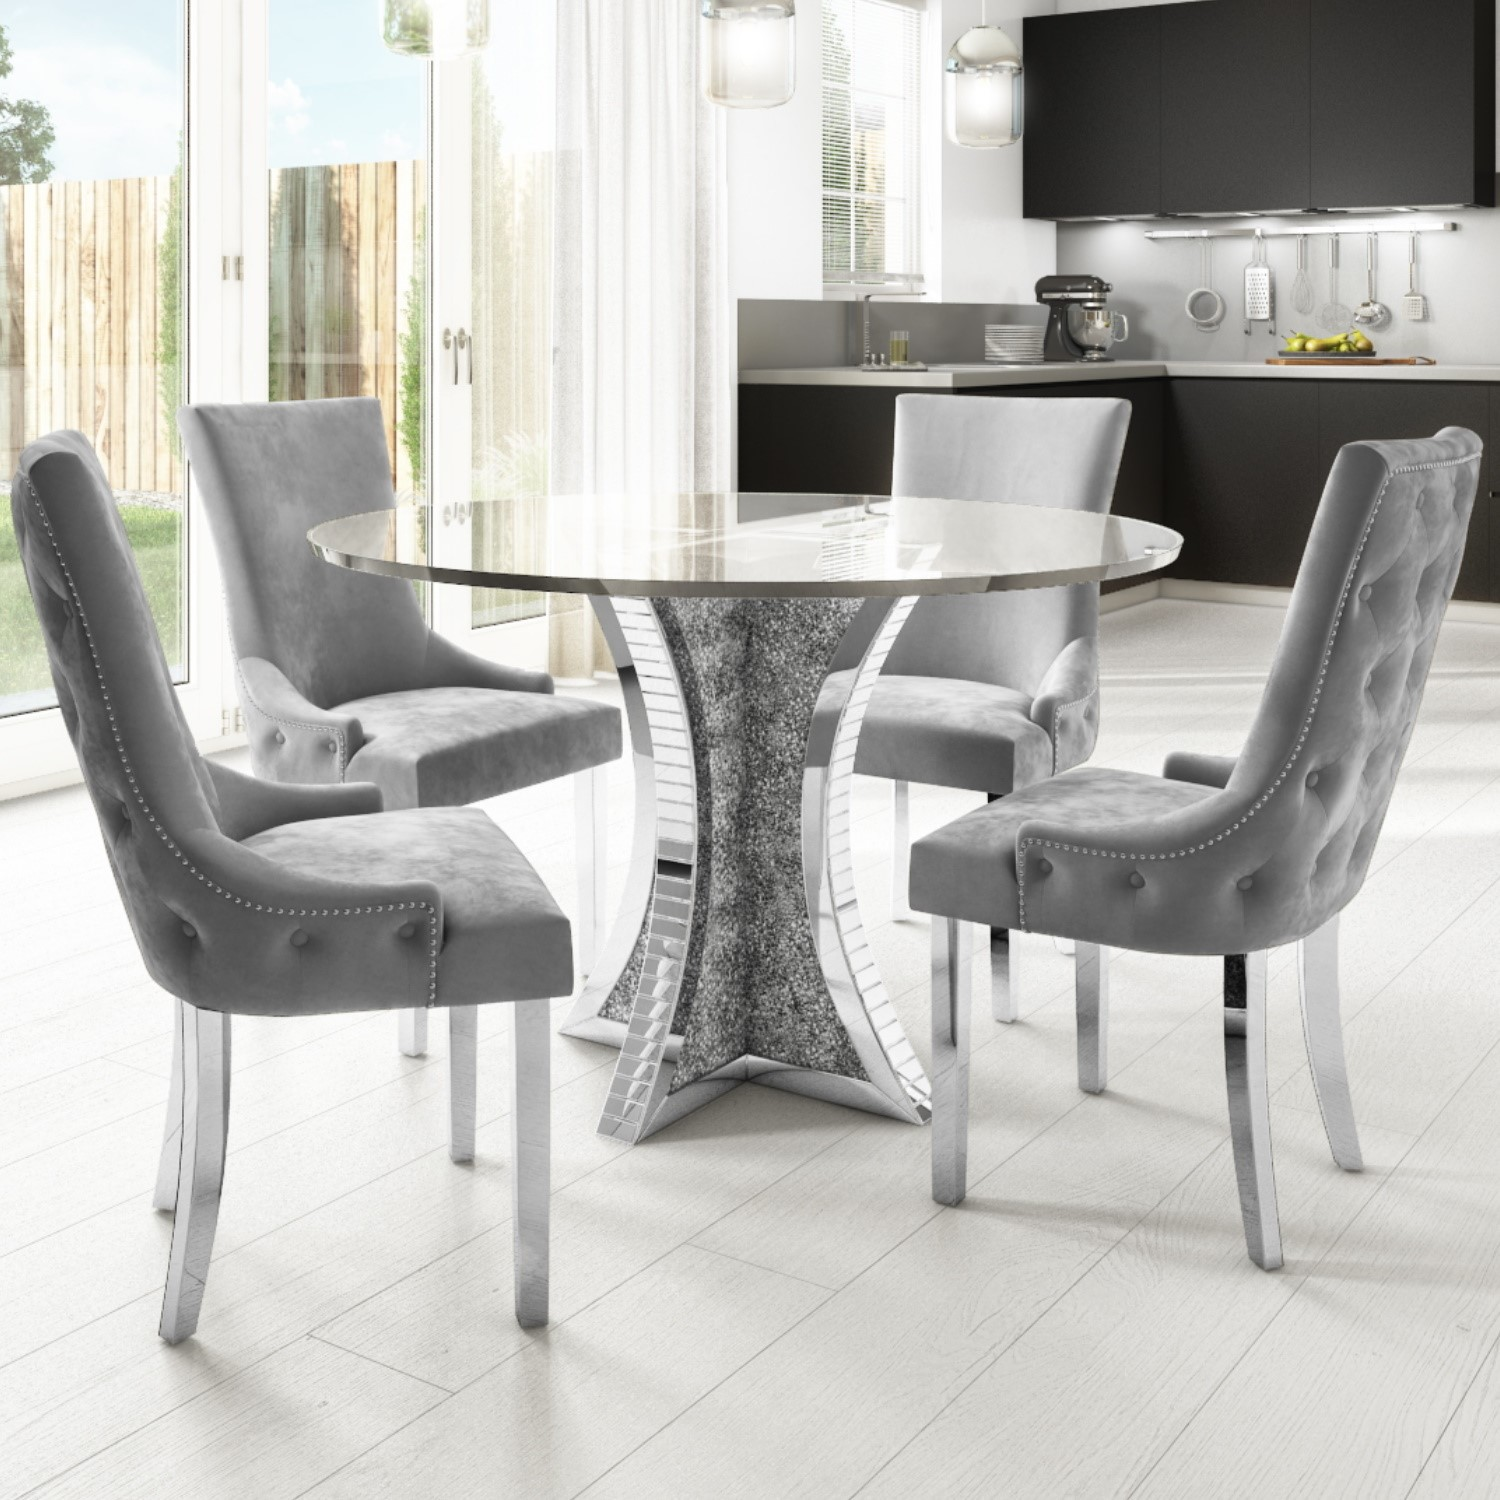 Round Mirrored Glass Top Dining Table with 4 Dining Chairs i